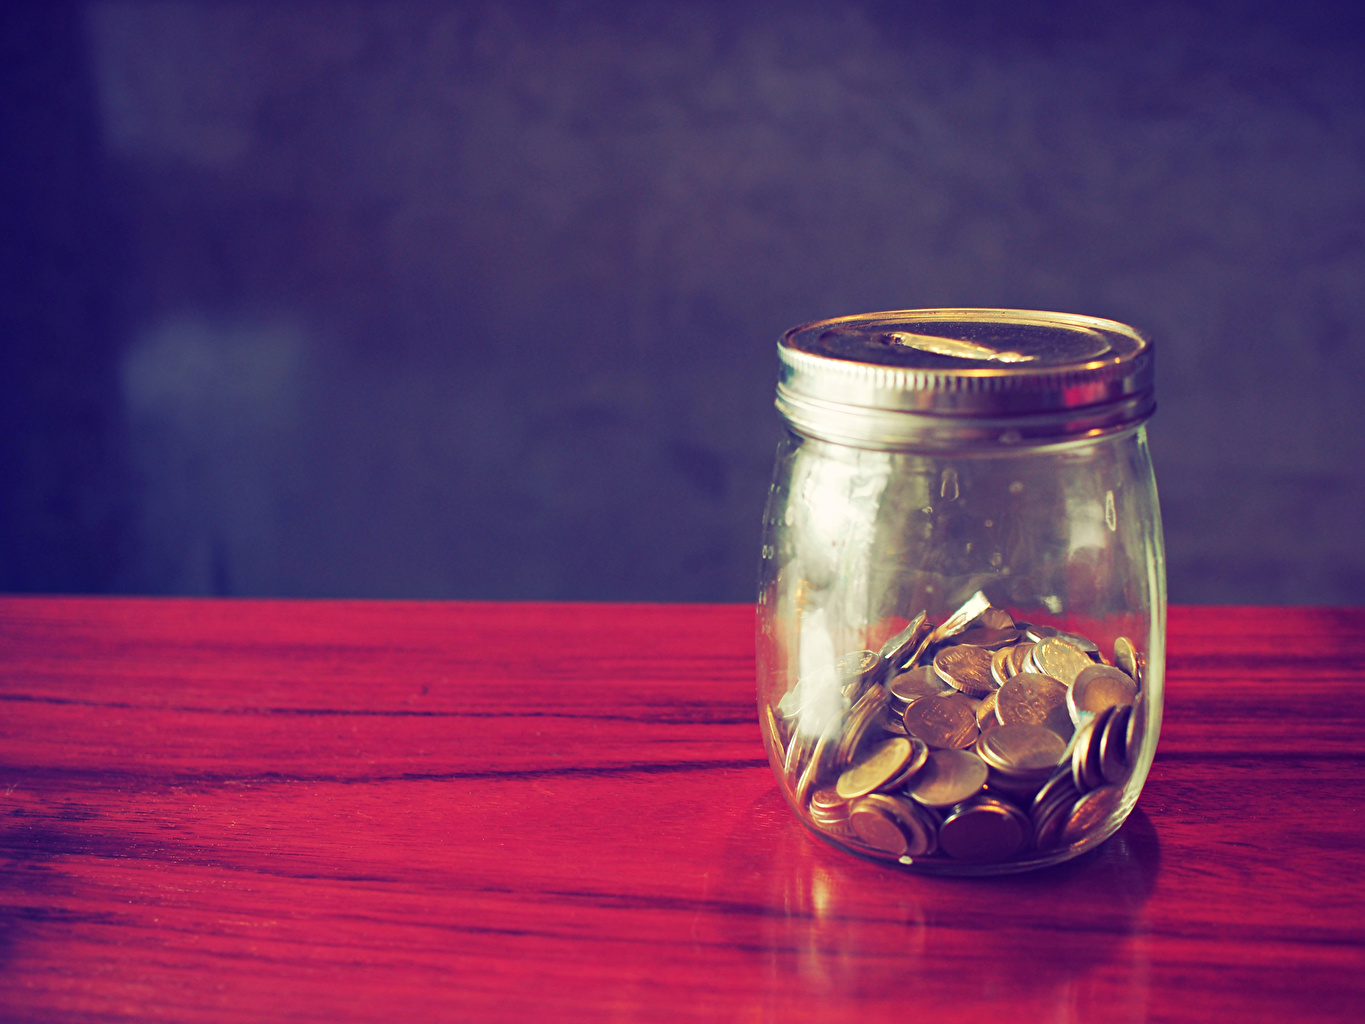 Desktop Wallpapers Coins Jar